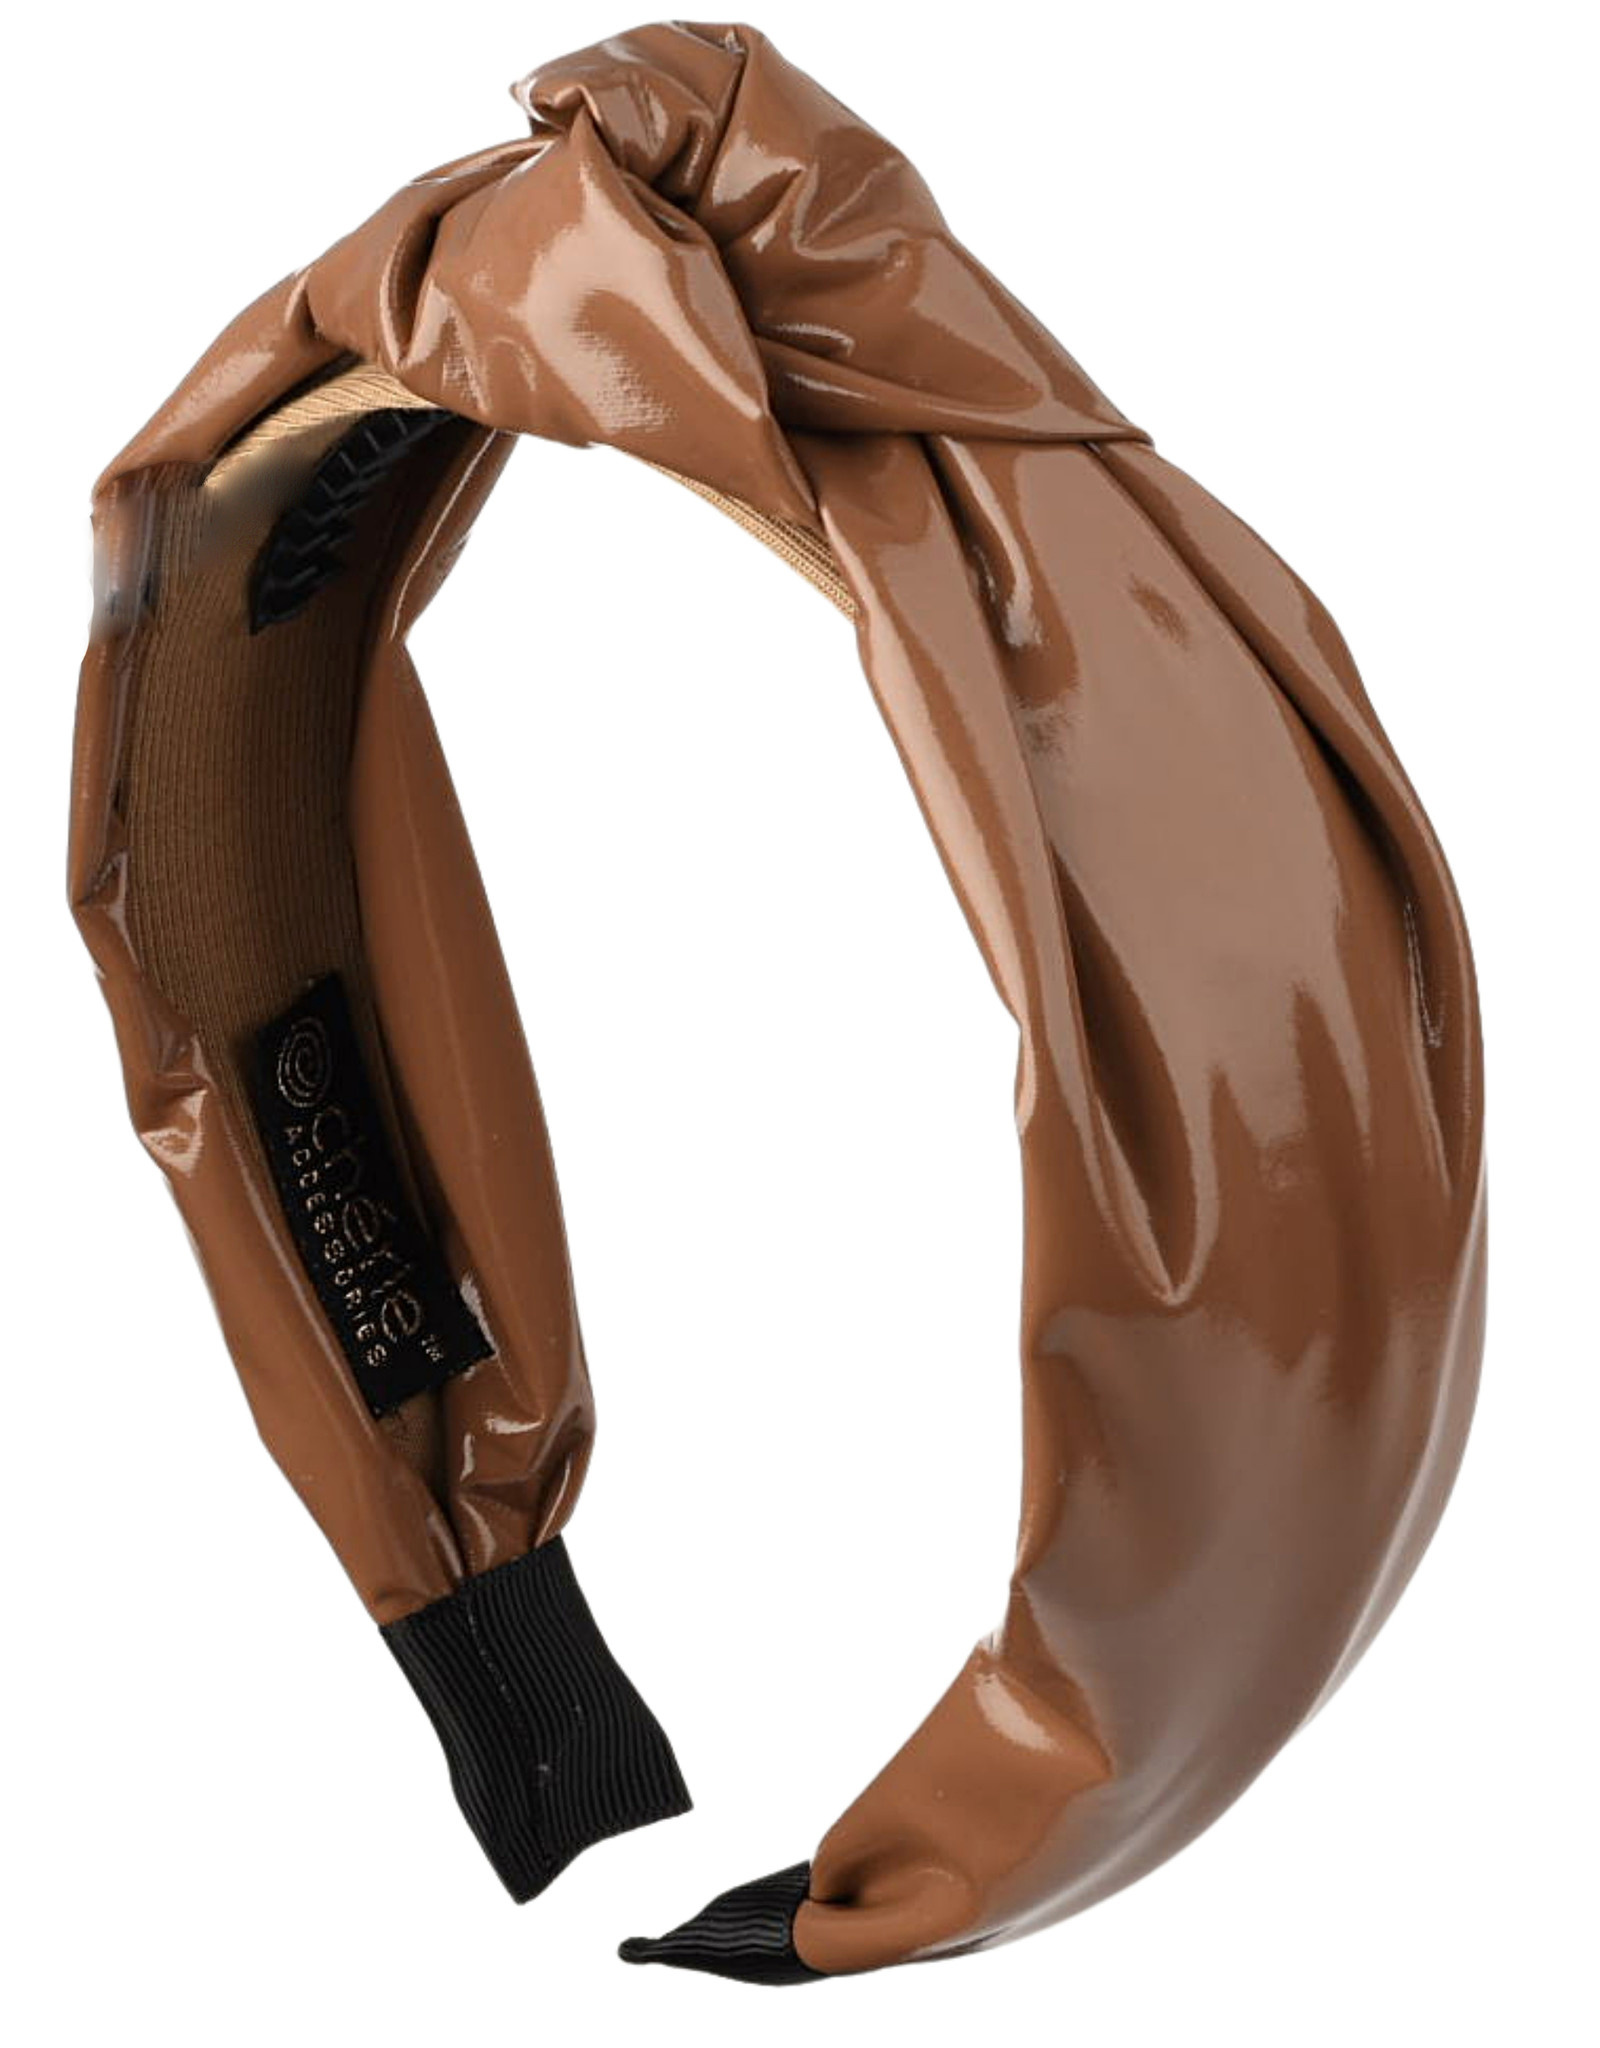 Cherie Cherie Patent Leather Puffy Knot Headband